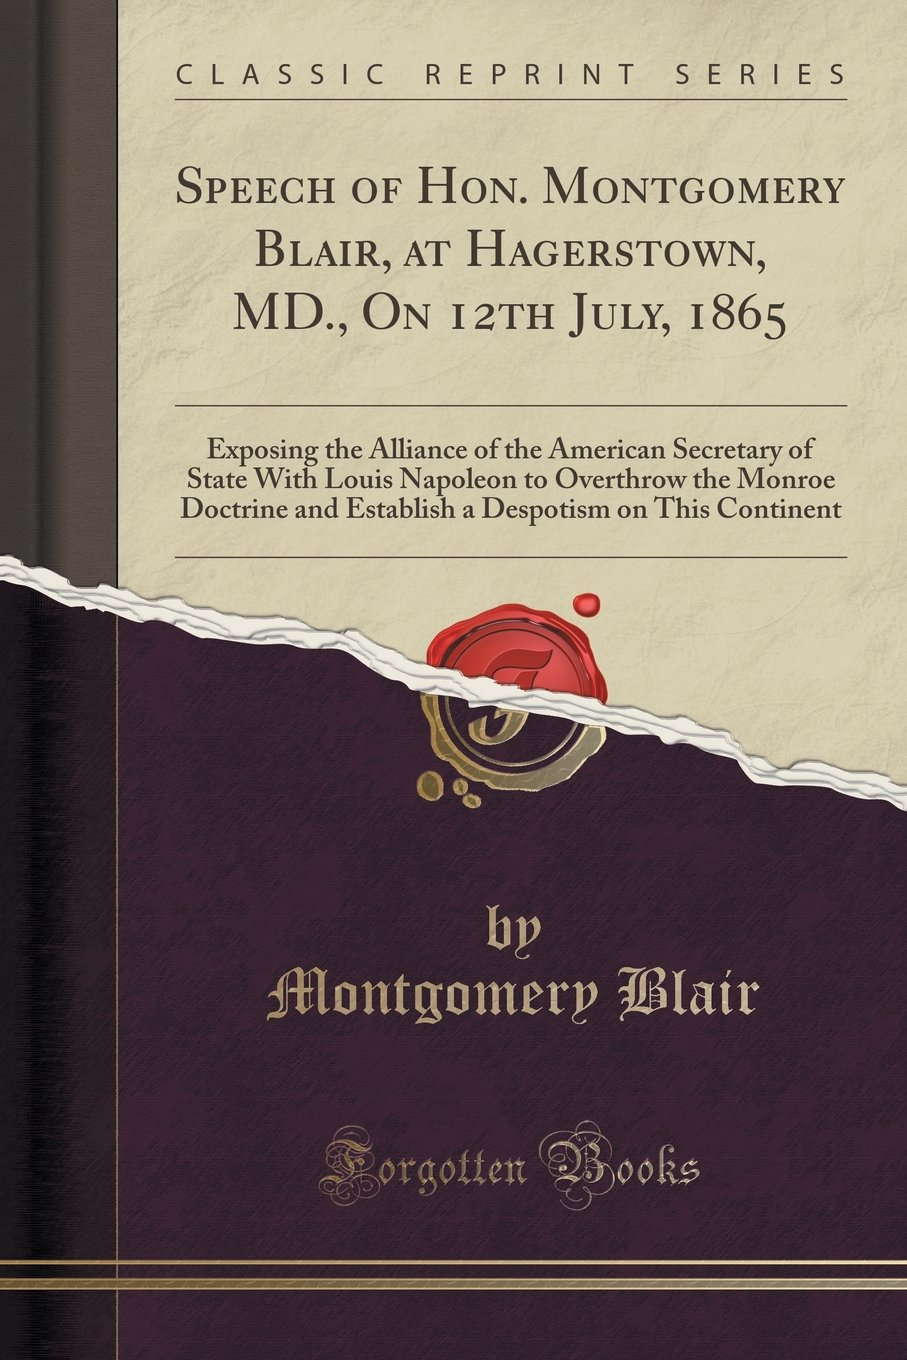 Read Online Speech of Hon. Montgomery Blair, at Hagerstown, MD., On 12th July, 1865: Exposing the Alliance of the American Secretary of State With Louis Napoleon ... Despotism on This Continent (Classic Reprint) pdf